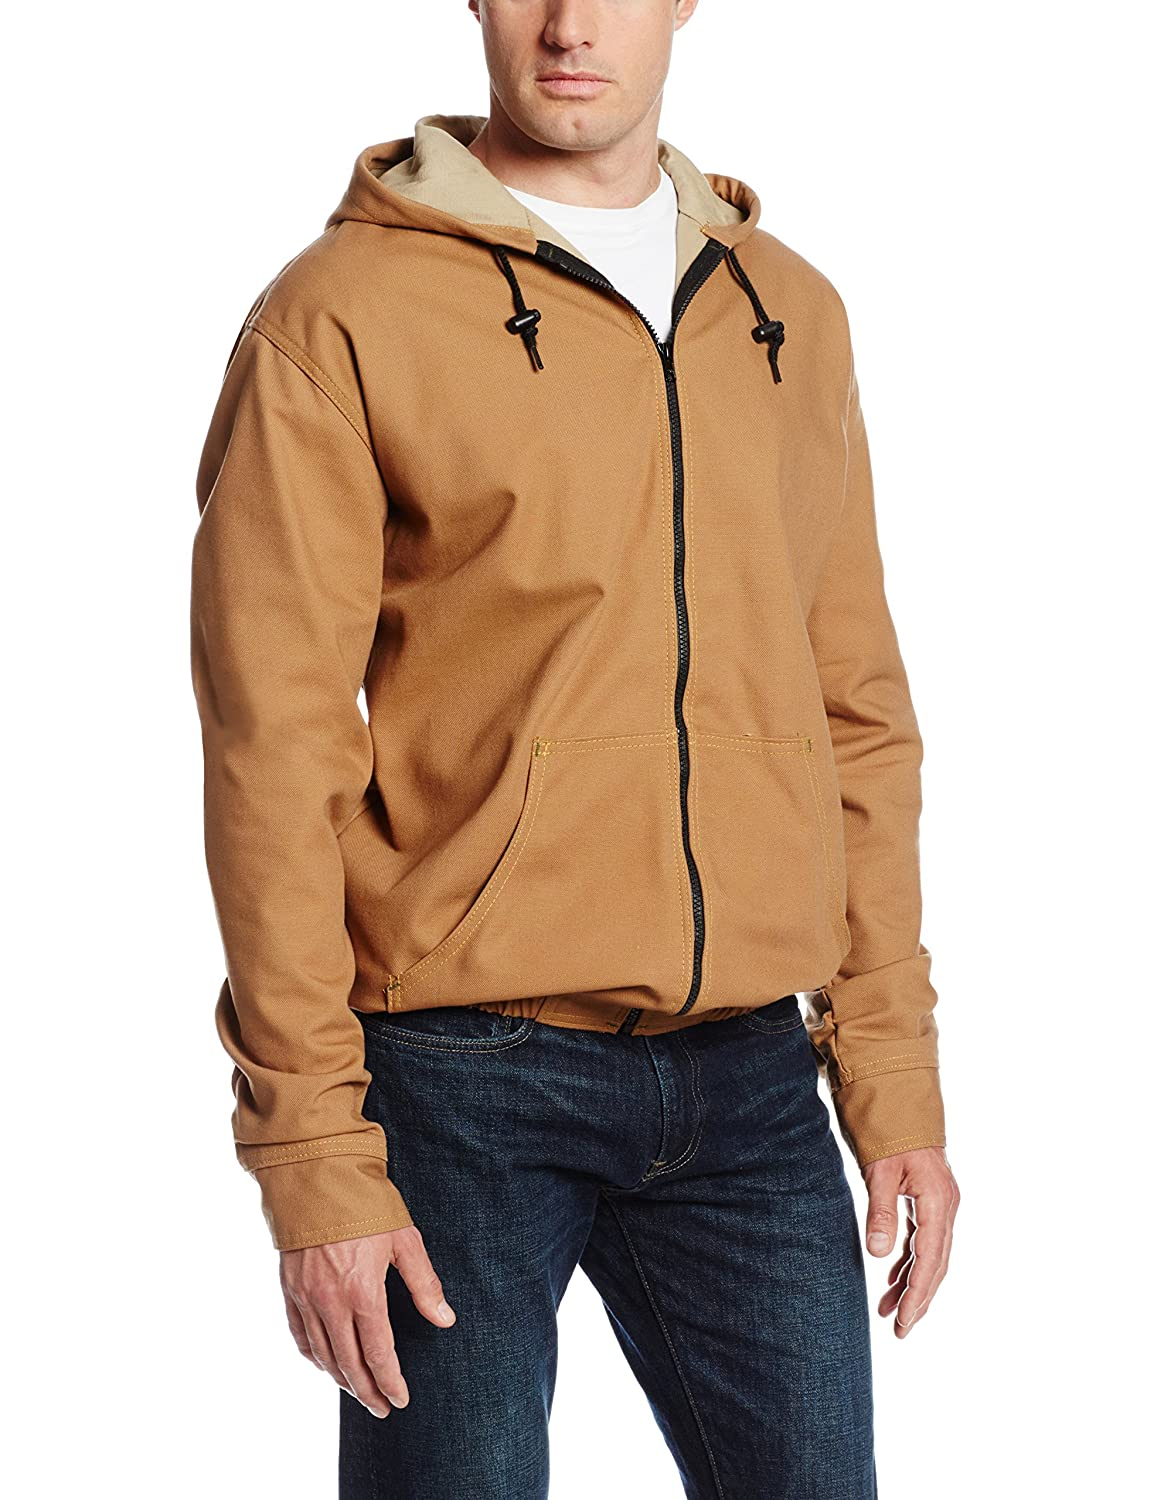 Bulwark Flame Resistant 11.5 oz Cotton//Nylon Excel FR ComforTouch Brown Duck Hooded Jacket